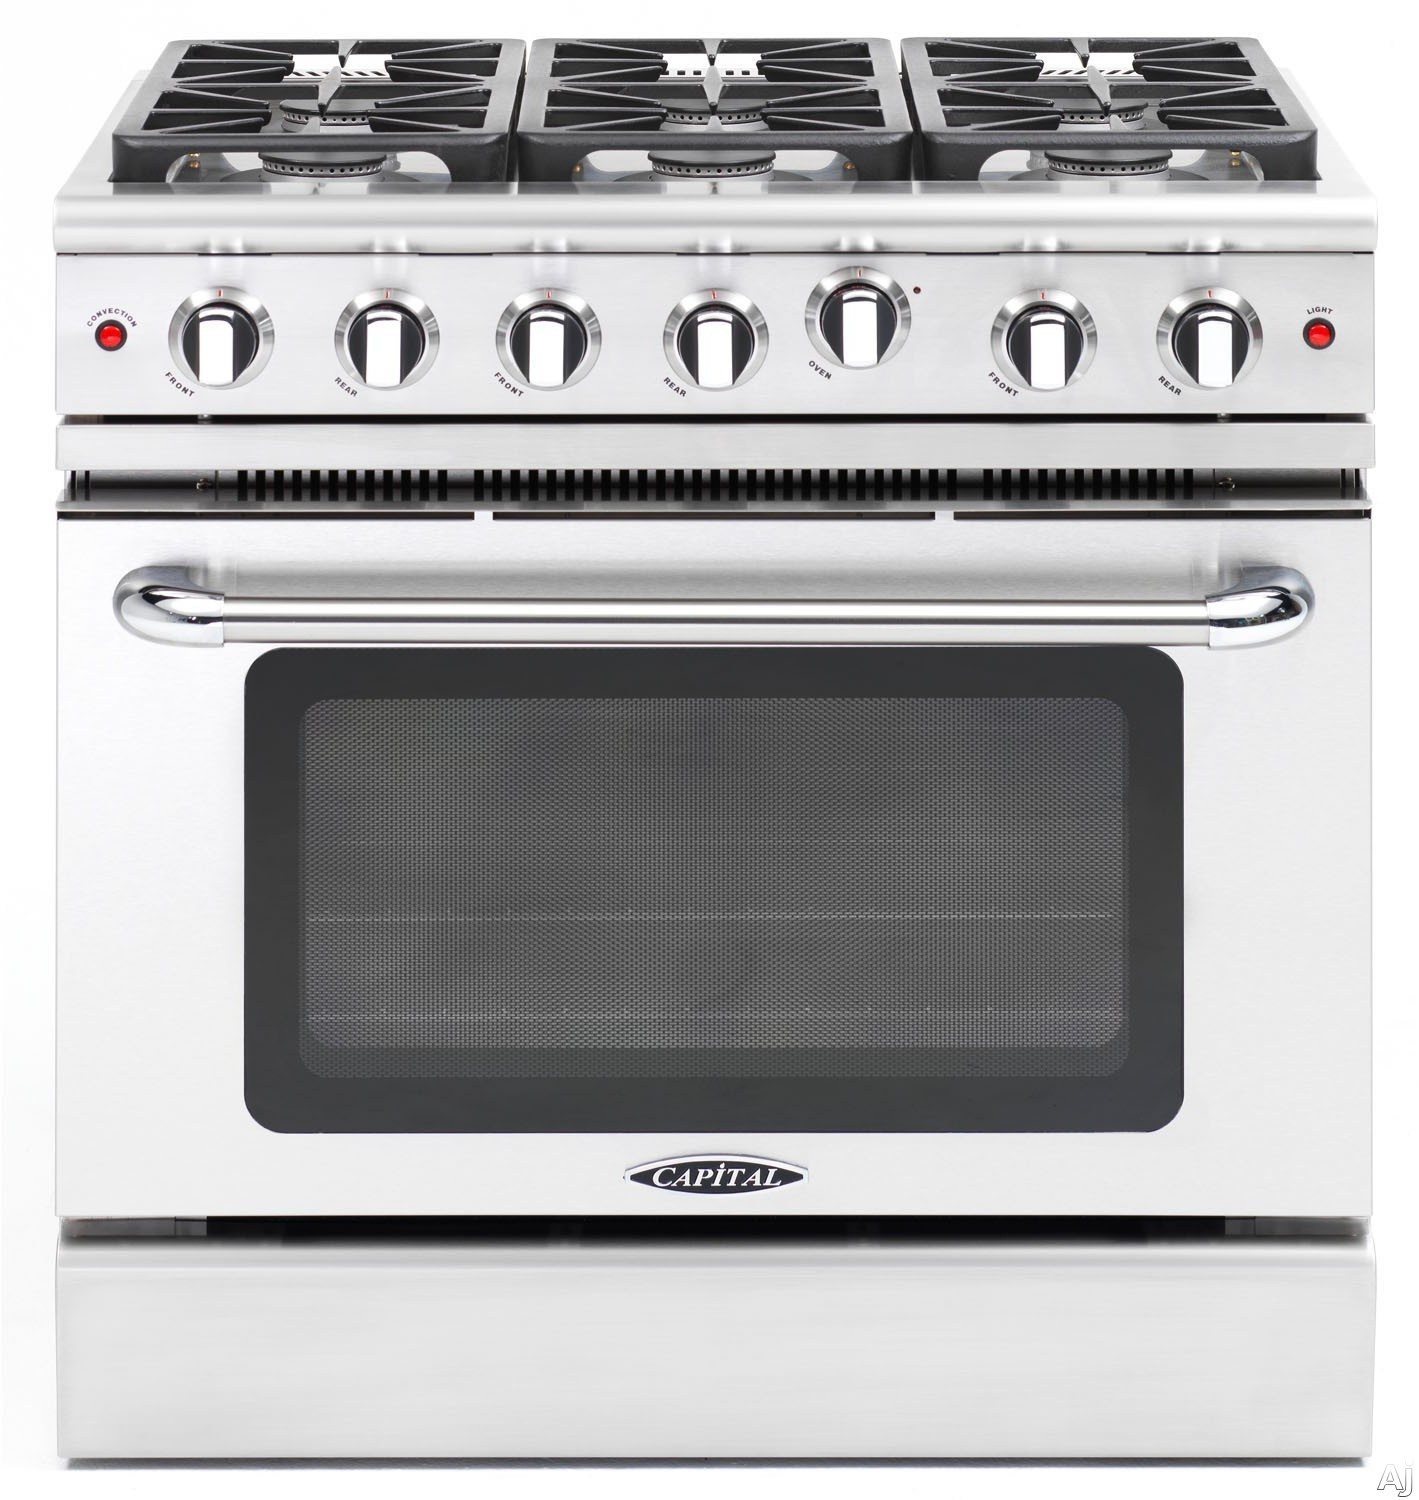 Capital Precision Series MCR366N 36 Inch Pro-Style Gas Range with 6 Sealed Burners, Convection Oven, Infrared Broil Burner, Interior Oven Light, Continuous Grates and 4.9 cu. ft. Oven: Natural Gas